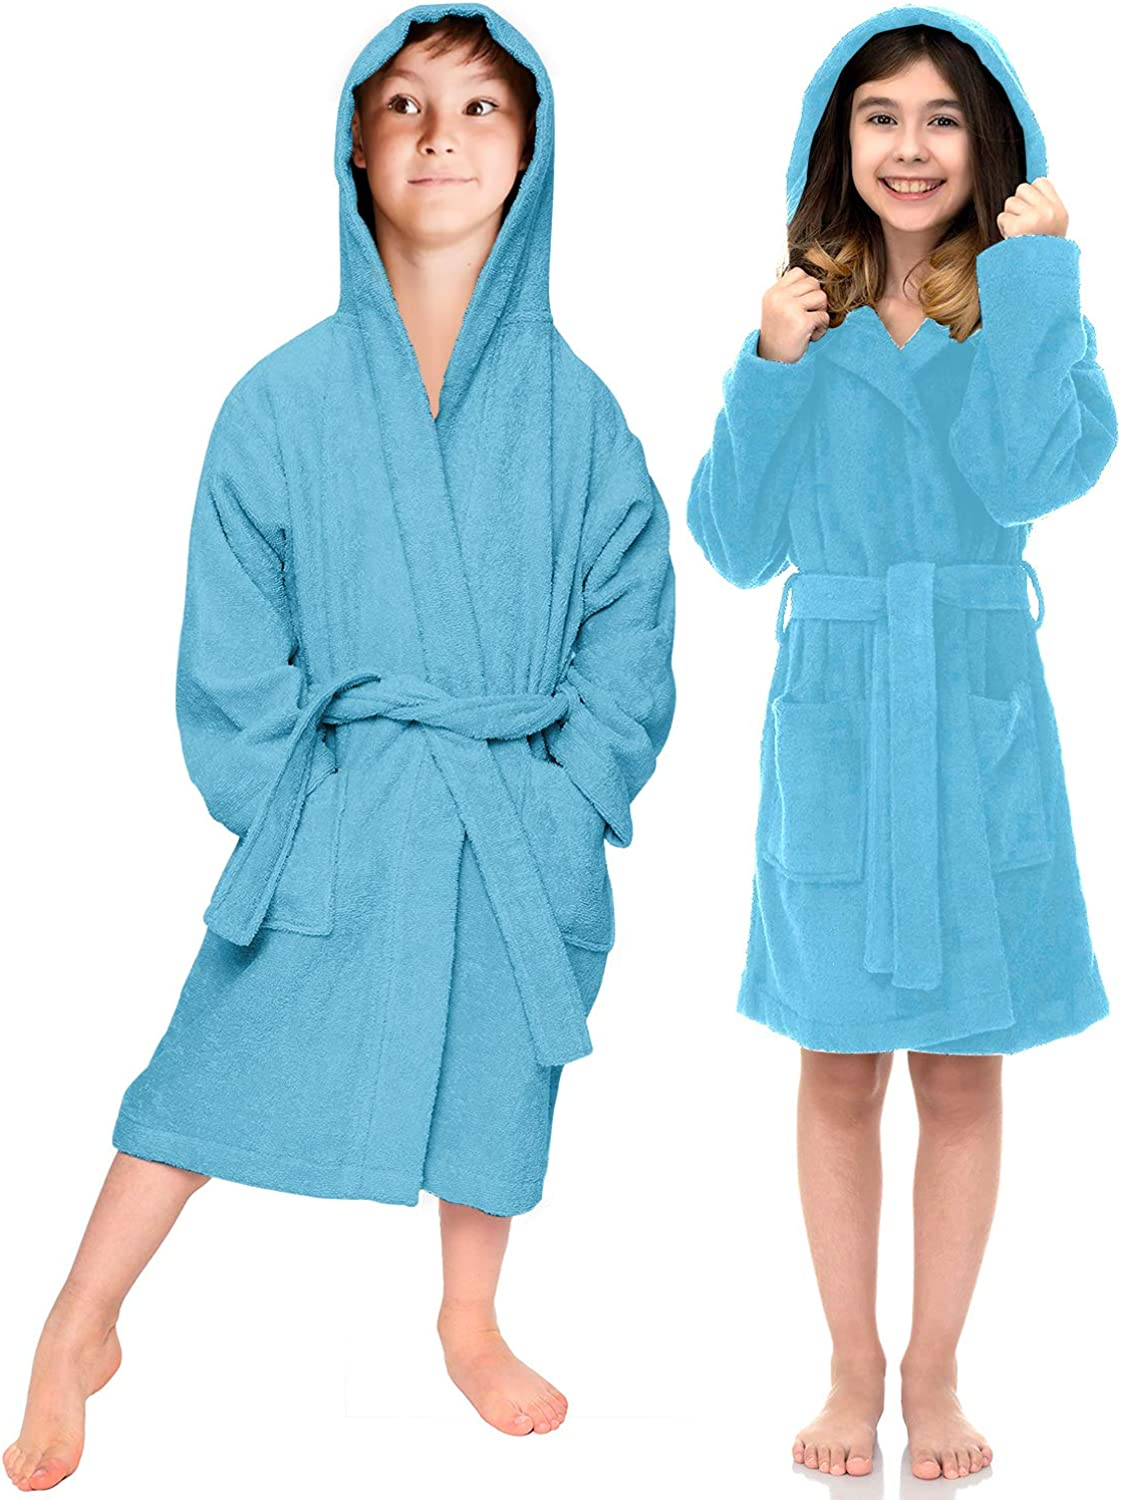 Kids Hoodie Dressing Gown Unisex Bath Towel Girls Boys Hooded Dryrobe Terry Towelling Bathrobe With Front Two Pockets belt and Hood Gowns